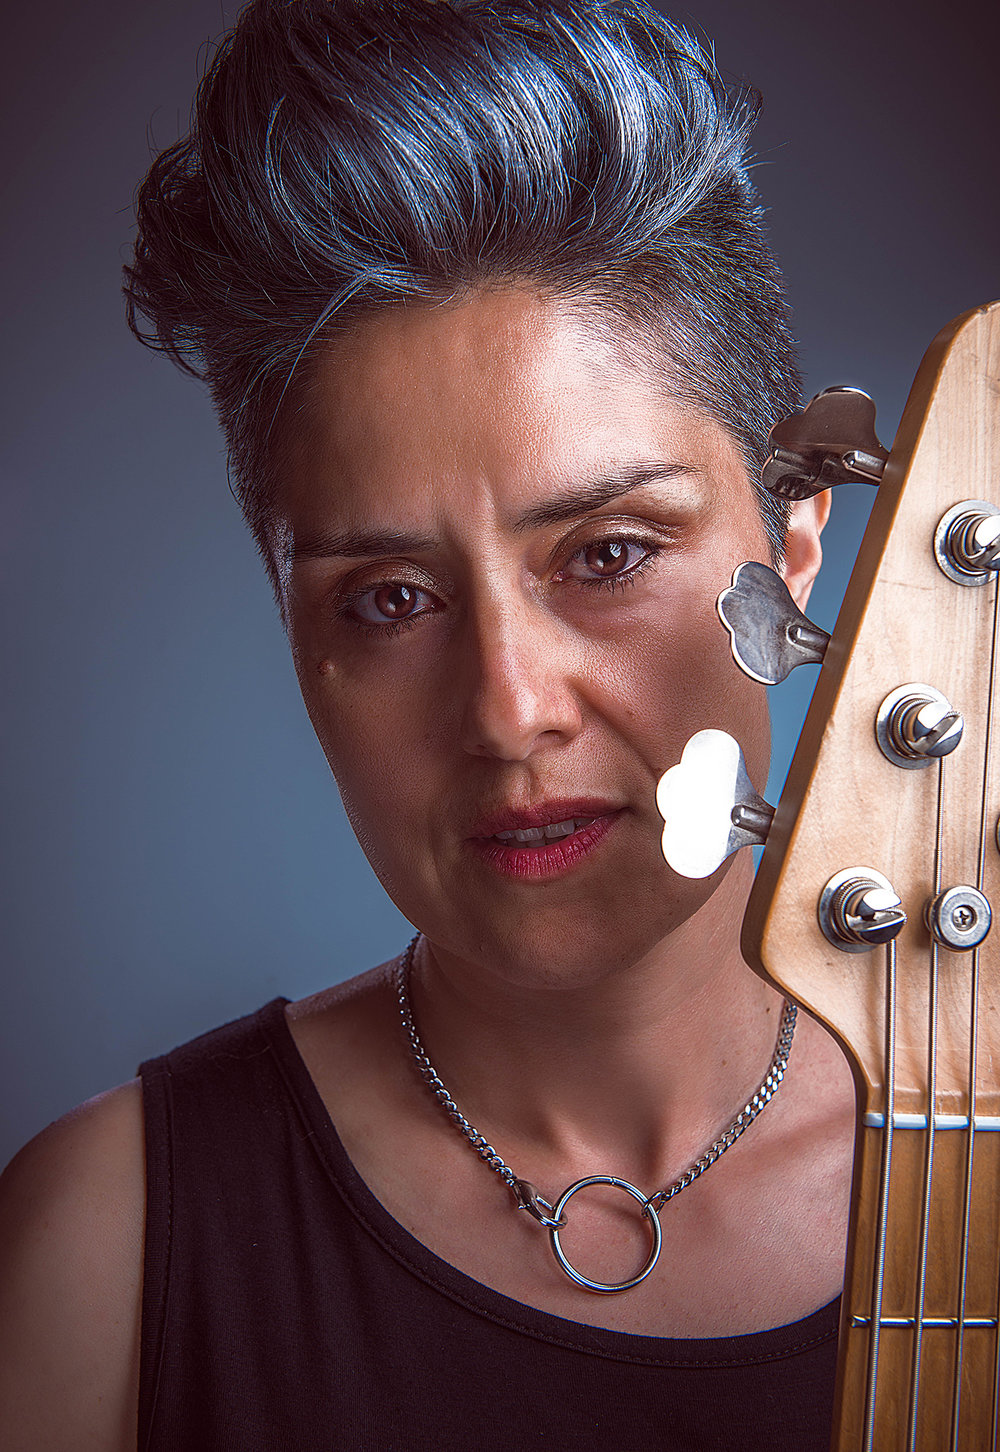 Oriana Barbato / Bass - Oriana Barbato is a versatile bassist, composer and a founding member of Santerías. Her eclectic style, adaptability, work ethic and professionalism have brought her to stages across North America and Europe, where she has shared the stage and been billed alongside with world-renowned musicians such as latin/flamenco fusion act TaKiLo, Catalan cumbia group La Troba Kung Fu, Qawwali master Shahid Ali Khan, Warwick endorsed bass prodigy Jorge Campos and Juno award-winning Canadian songwriter Bif Naked. Oriana holds a BFA from York University and also offers freelance services as she enjoys playing shows and is very passionate about her instrument. She shares these strengths by teaching bass and facilitating bands throughout the year, for sessions run by the Toronto Girls Rock Camp body.